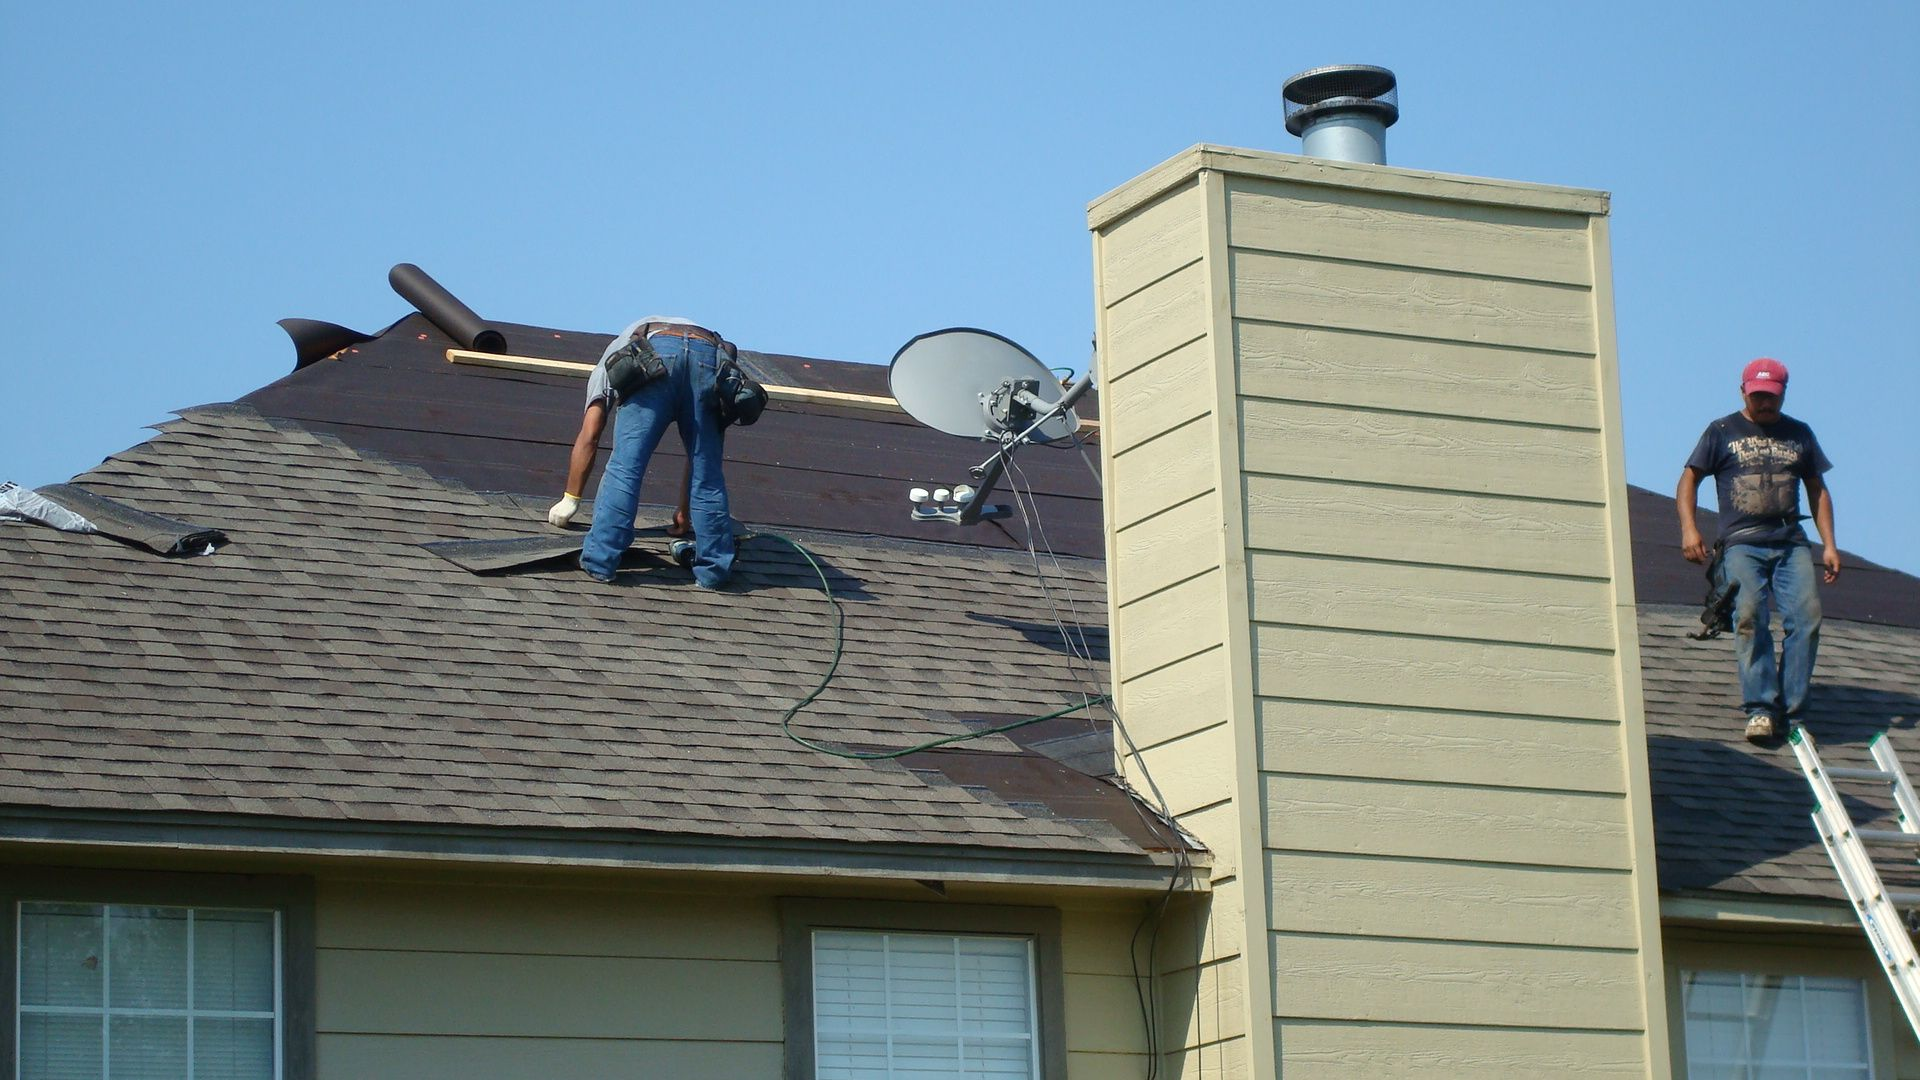 The Best Ways To Find The Best Roofing Company Roofing Services Roofing Contractors Roof Repair